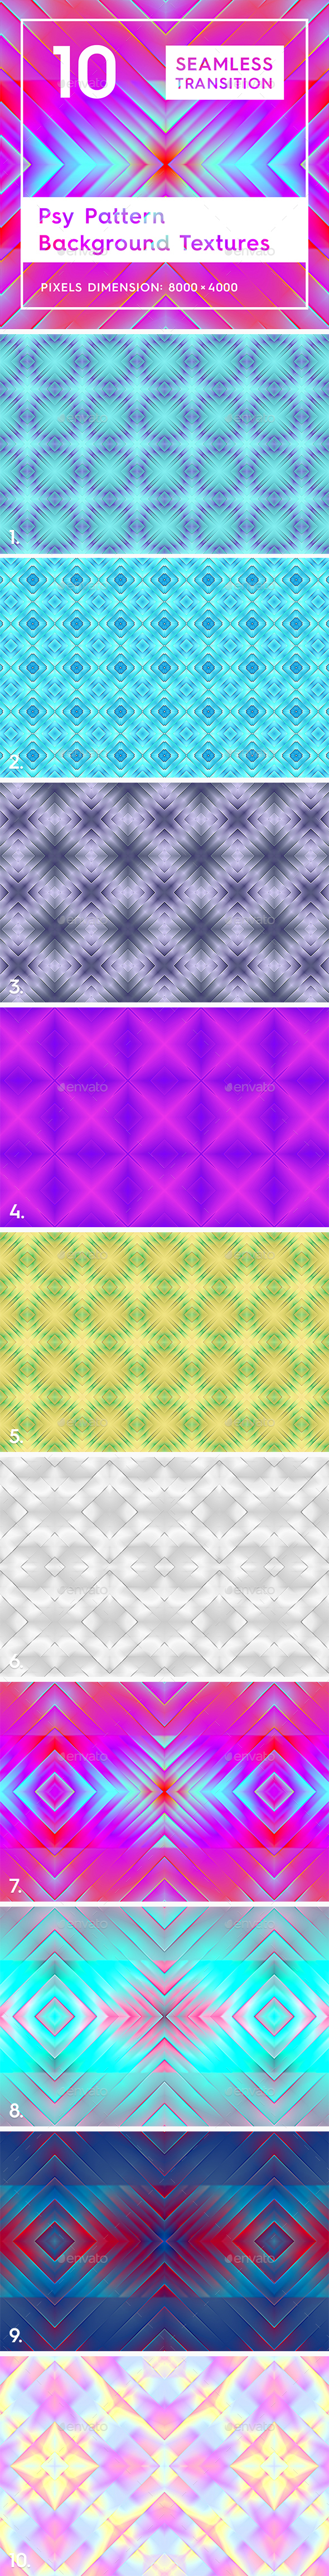 10 Psy Pattern Background Textures - Patterns Backgrounds